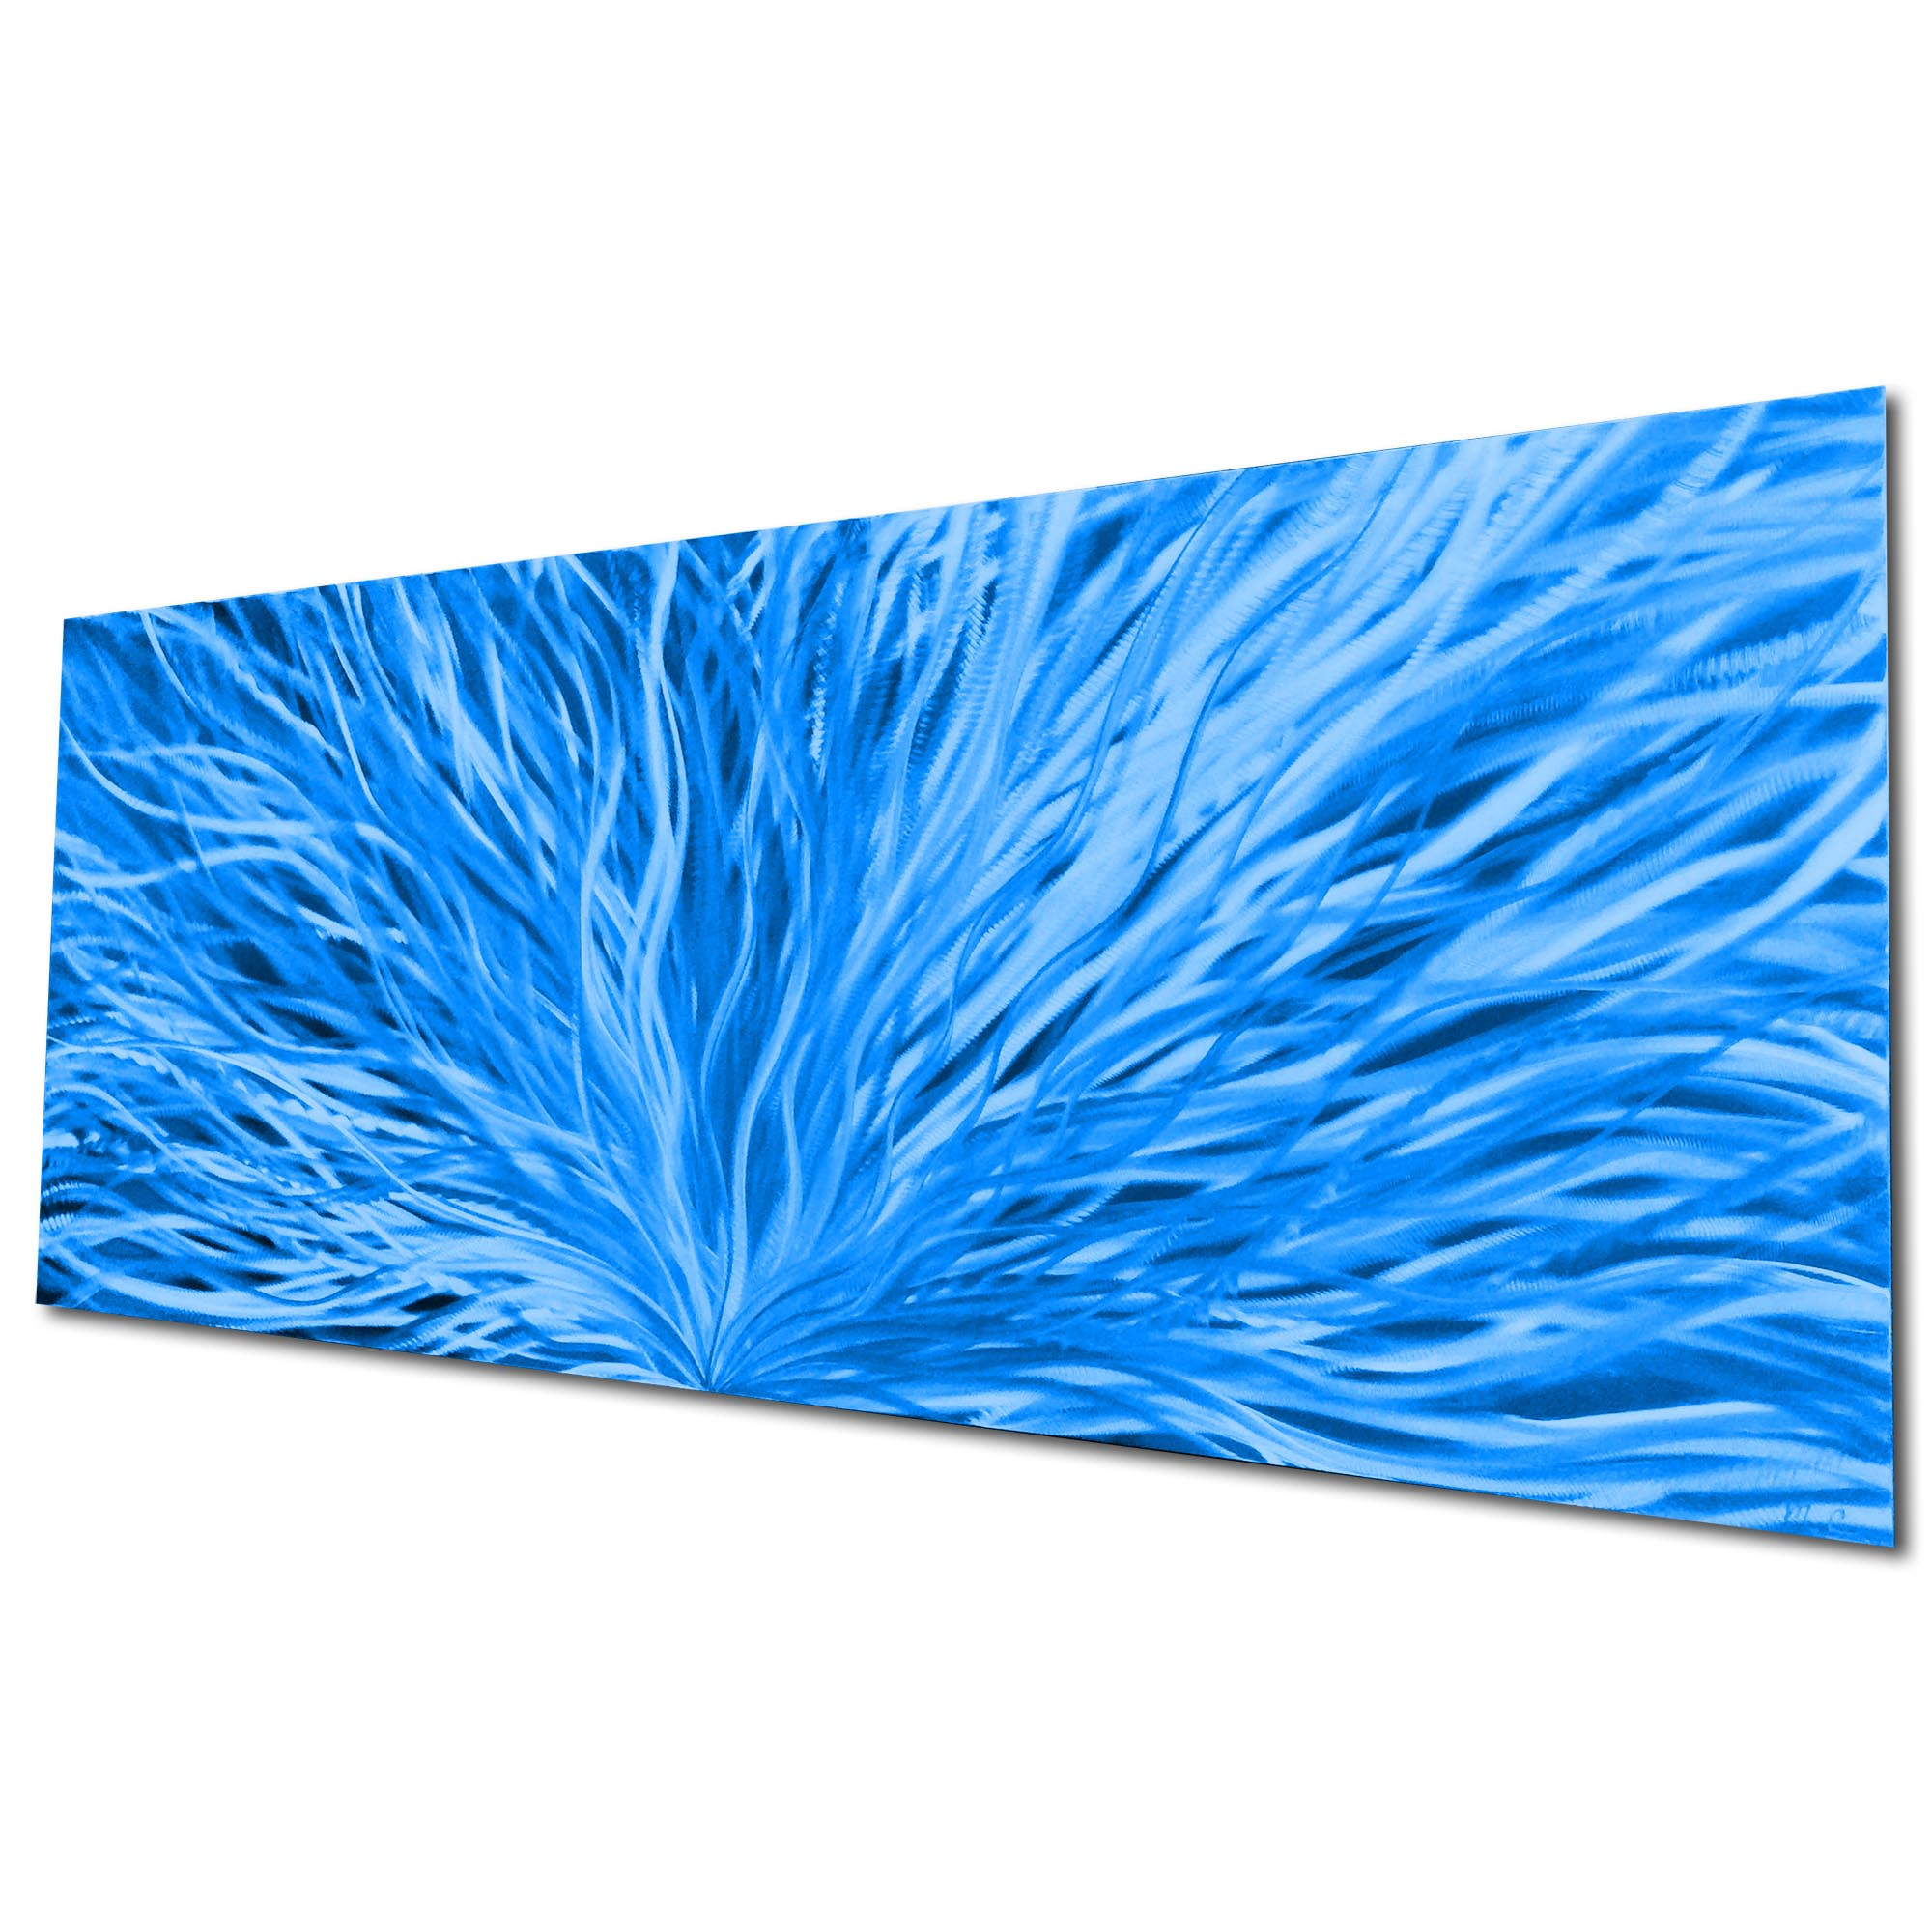 Blooming Blue by Helena Martin - Original Abstract Art on Ground and Painted Metal - Image 3